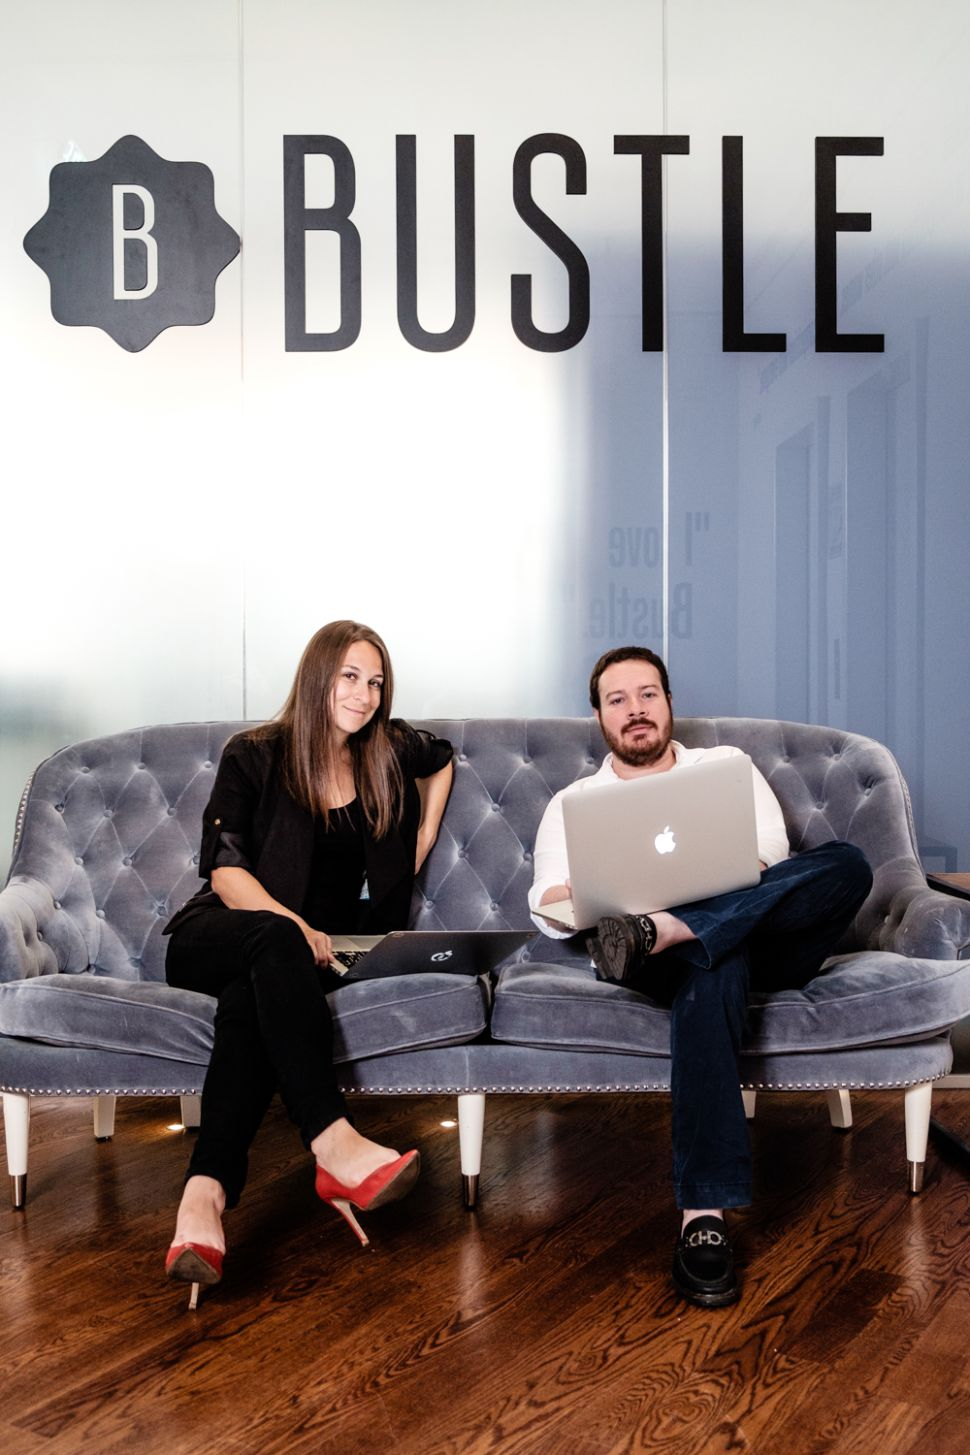 How Bustle Proved the Haters Wrong